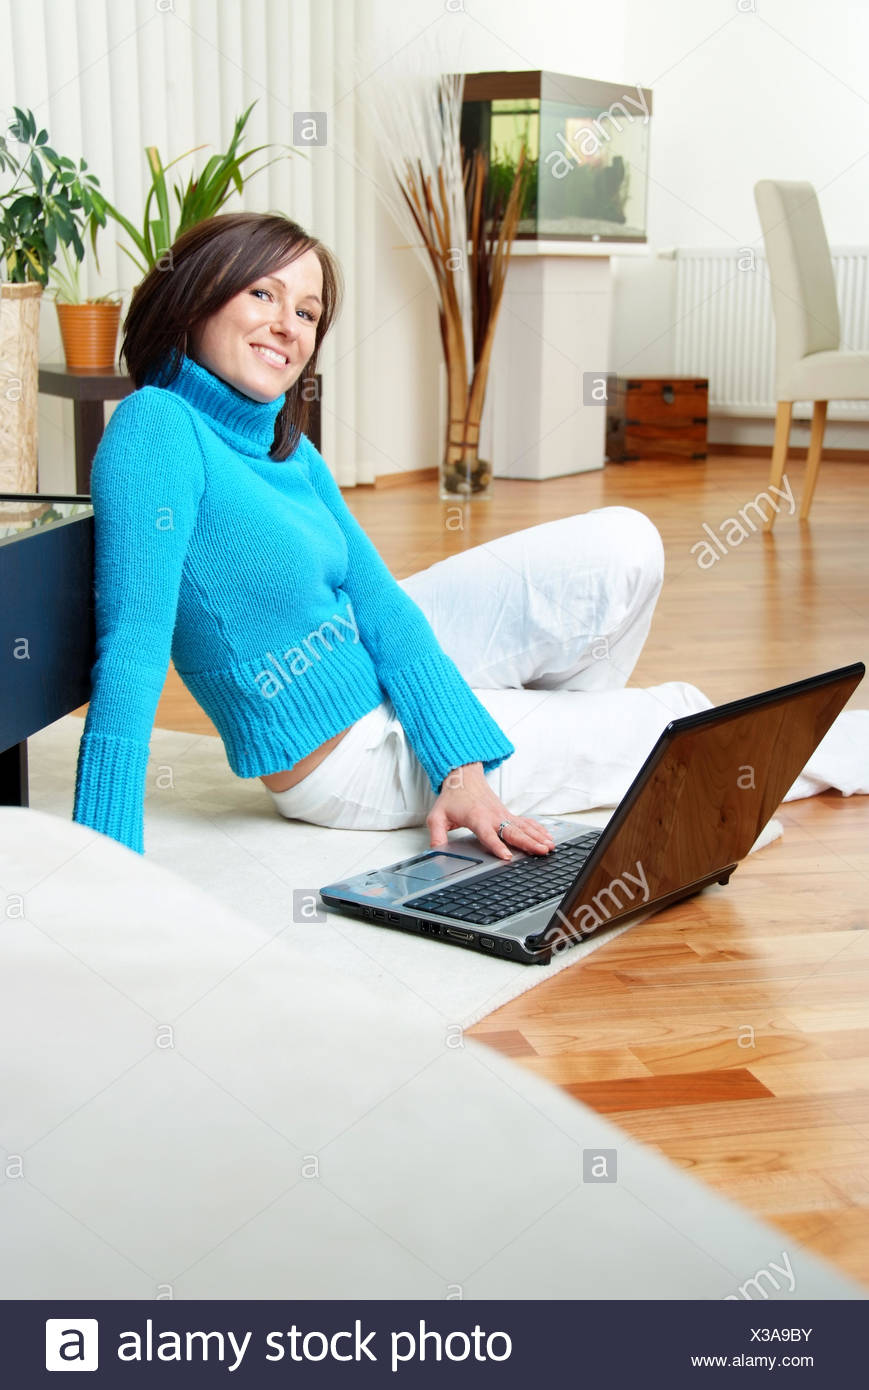 Young woman at home using laptop - Stock Image